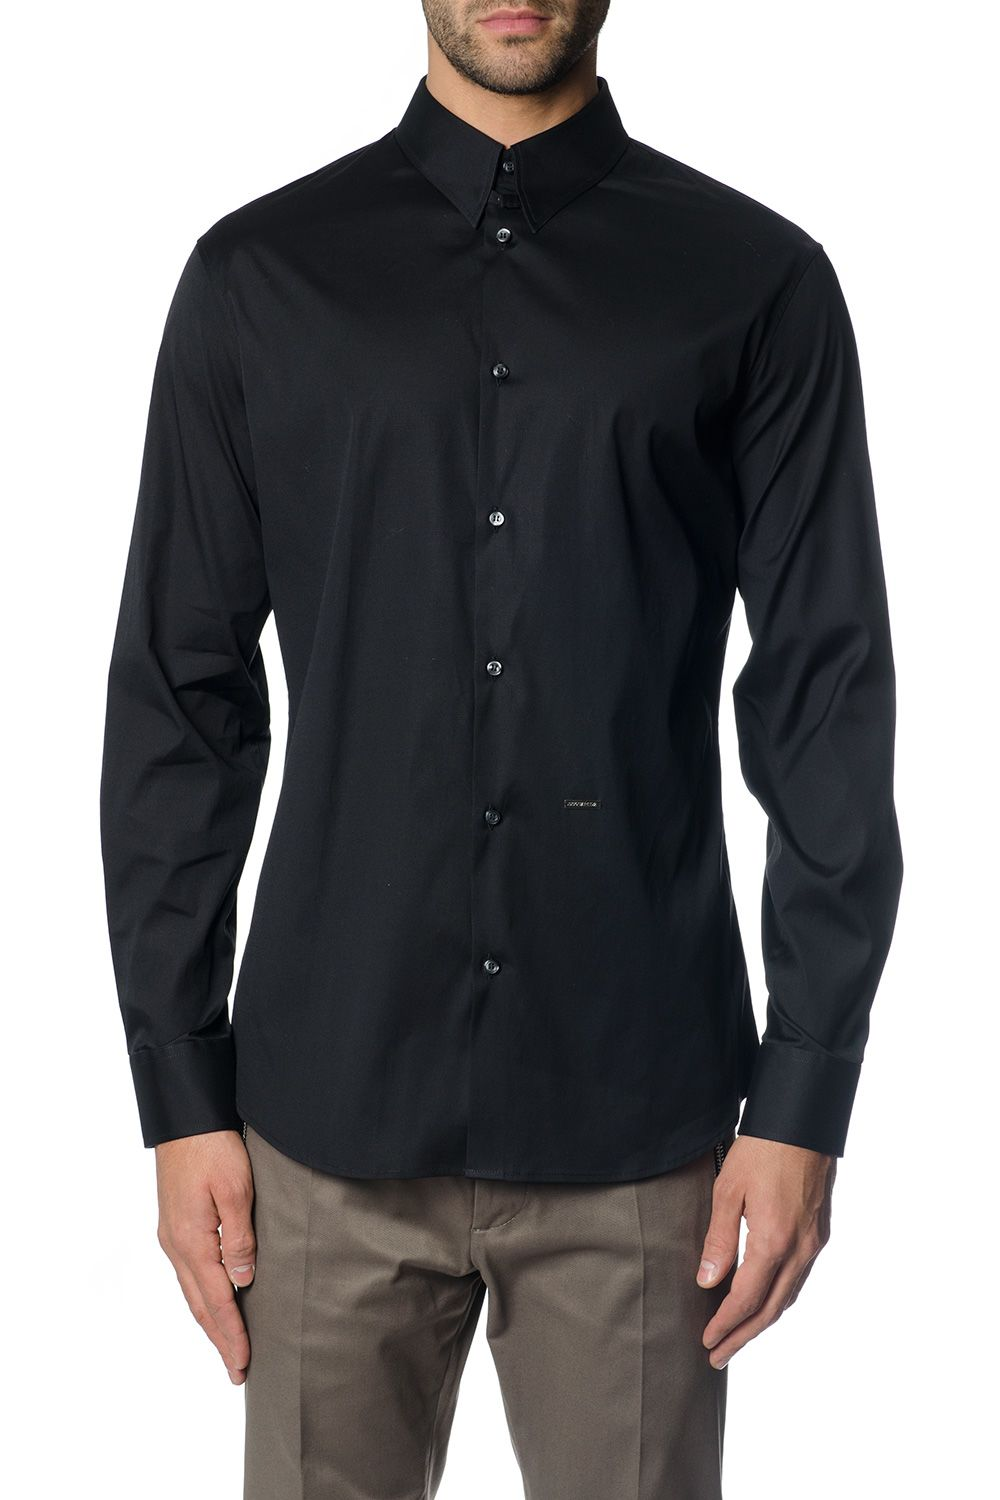 Dsquared2 Black Classic Fitted Shirt In Cotton